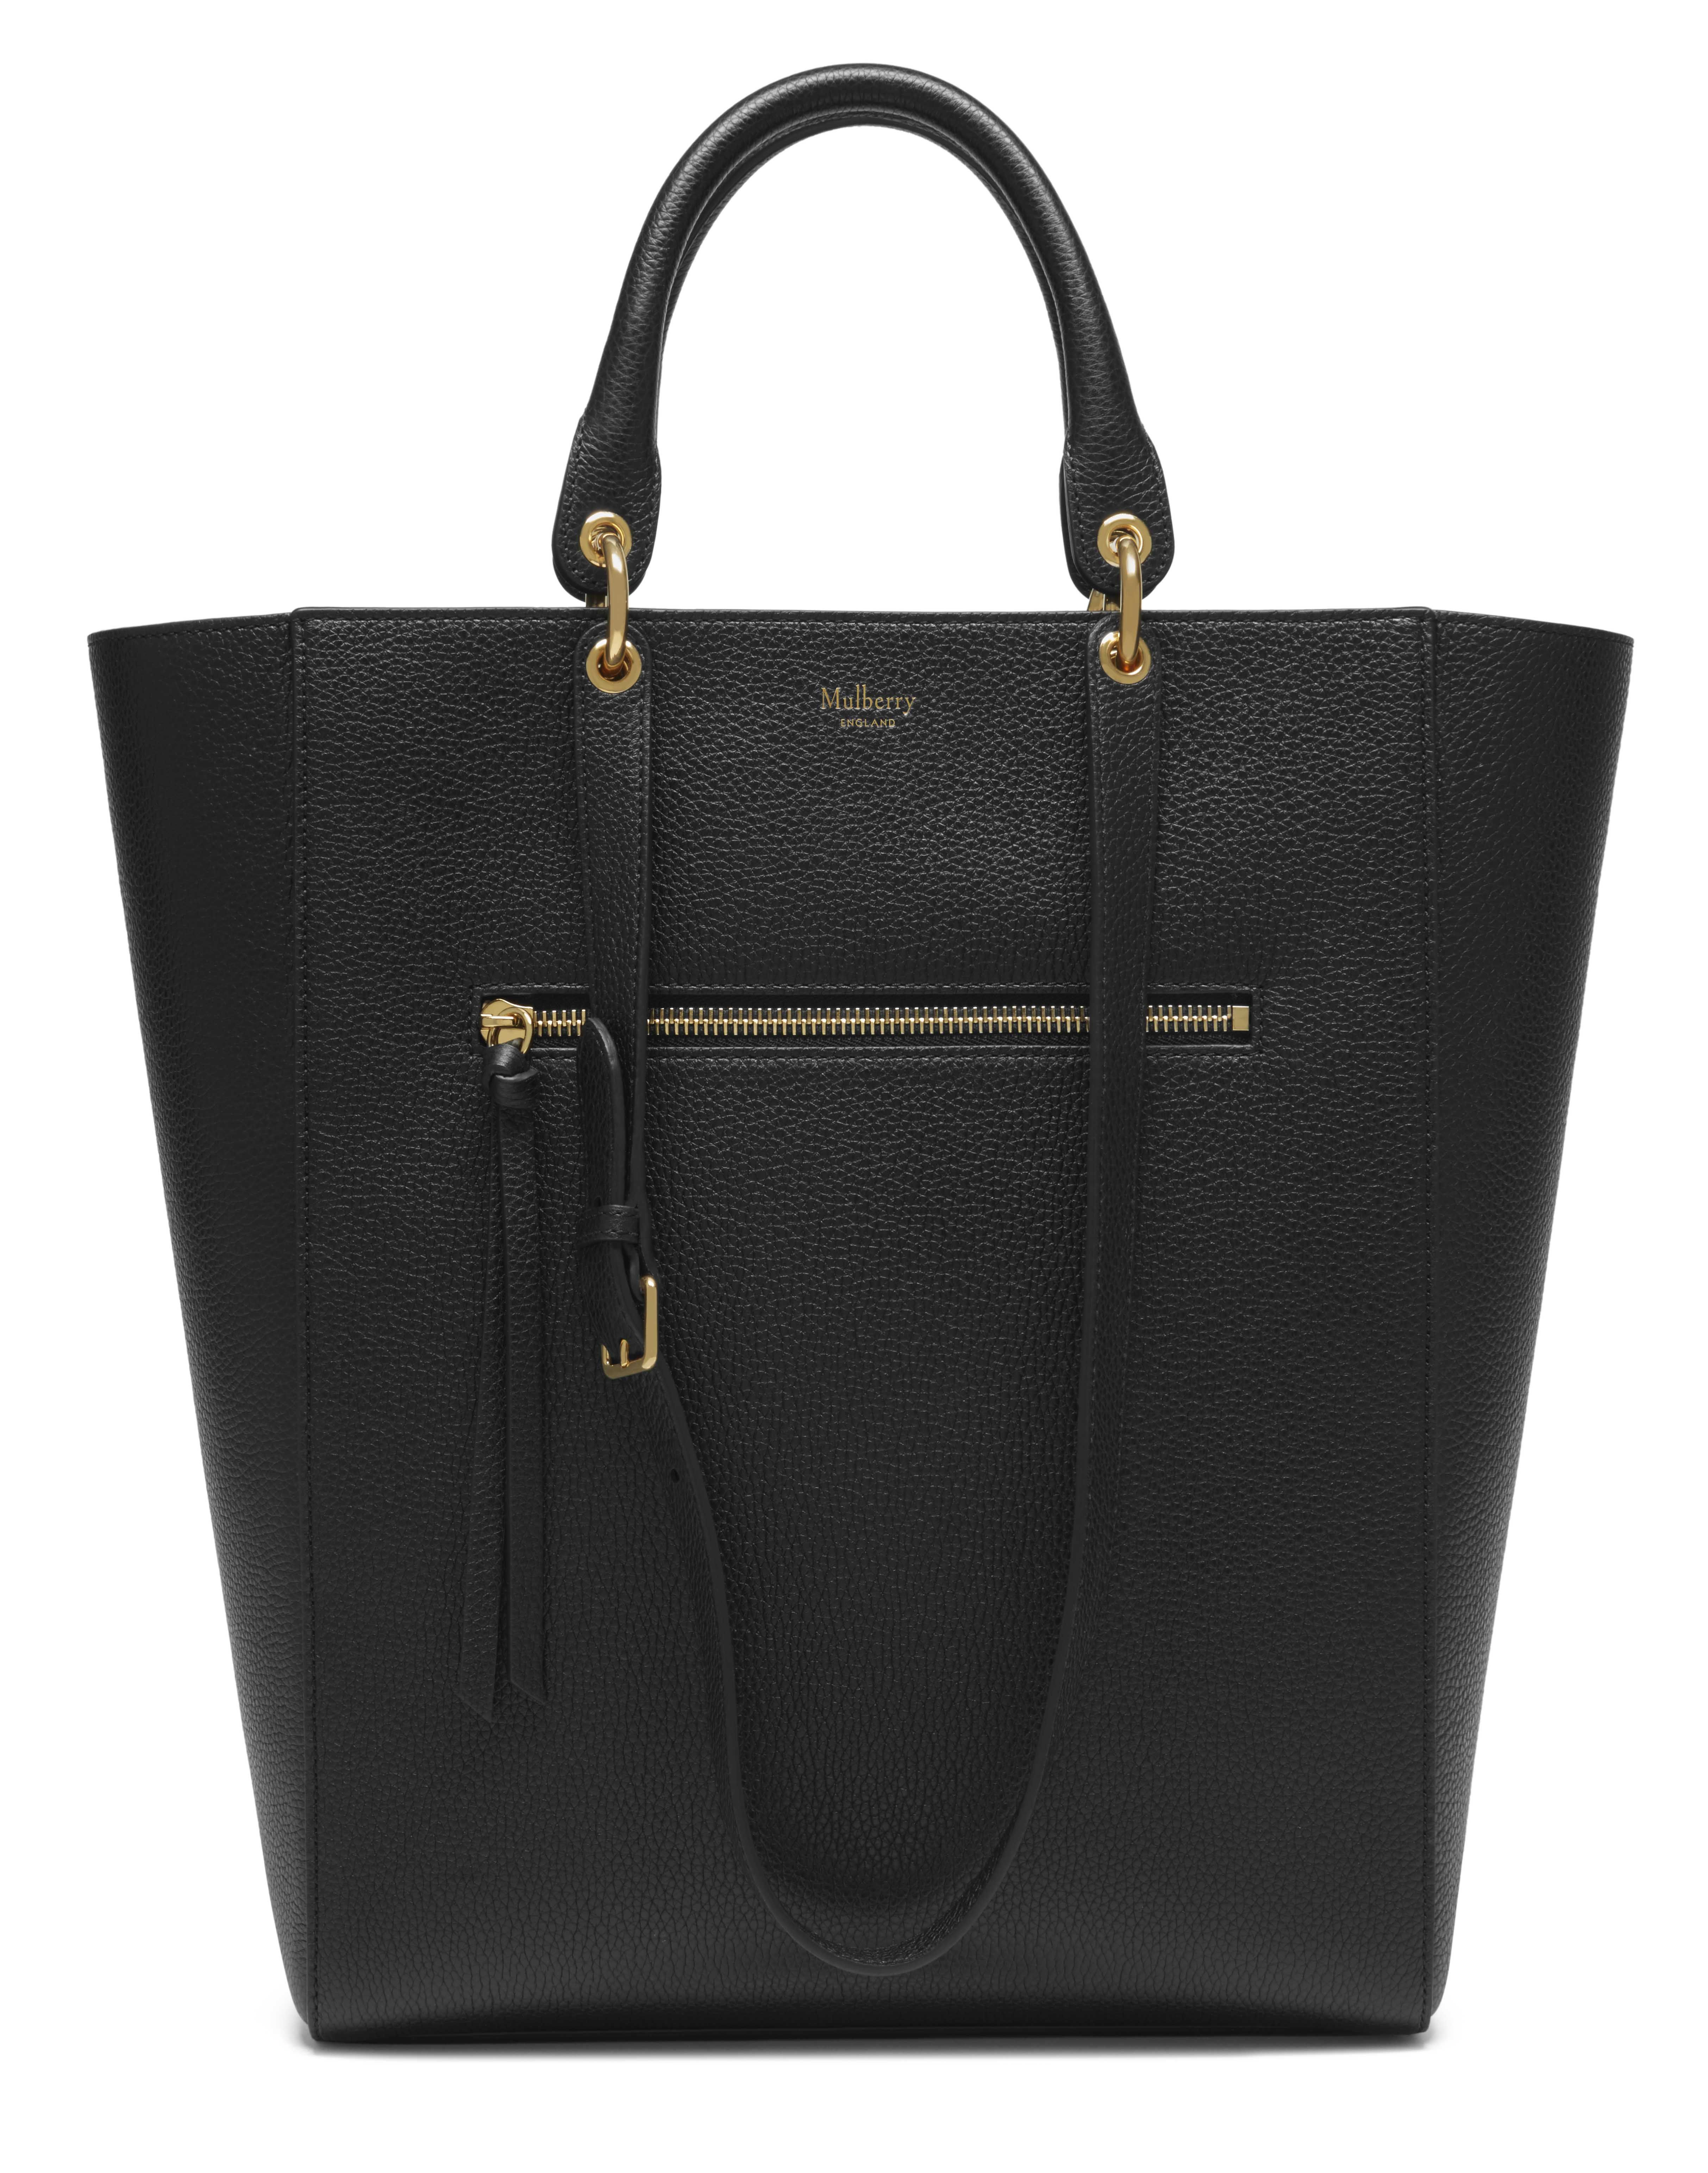 199bc07208 Mulberry sale  the best handbags in the UK sale